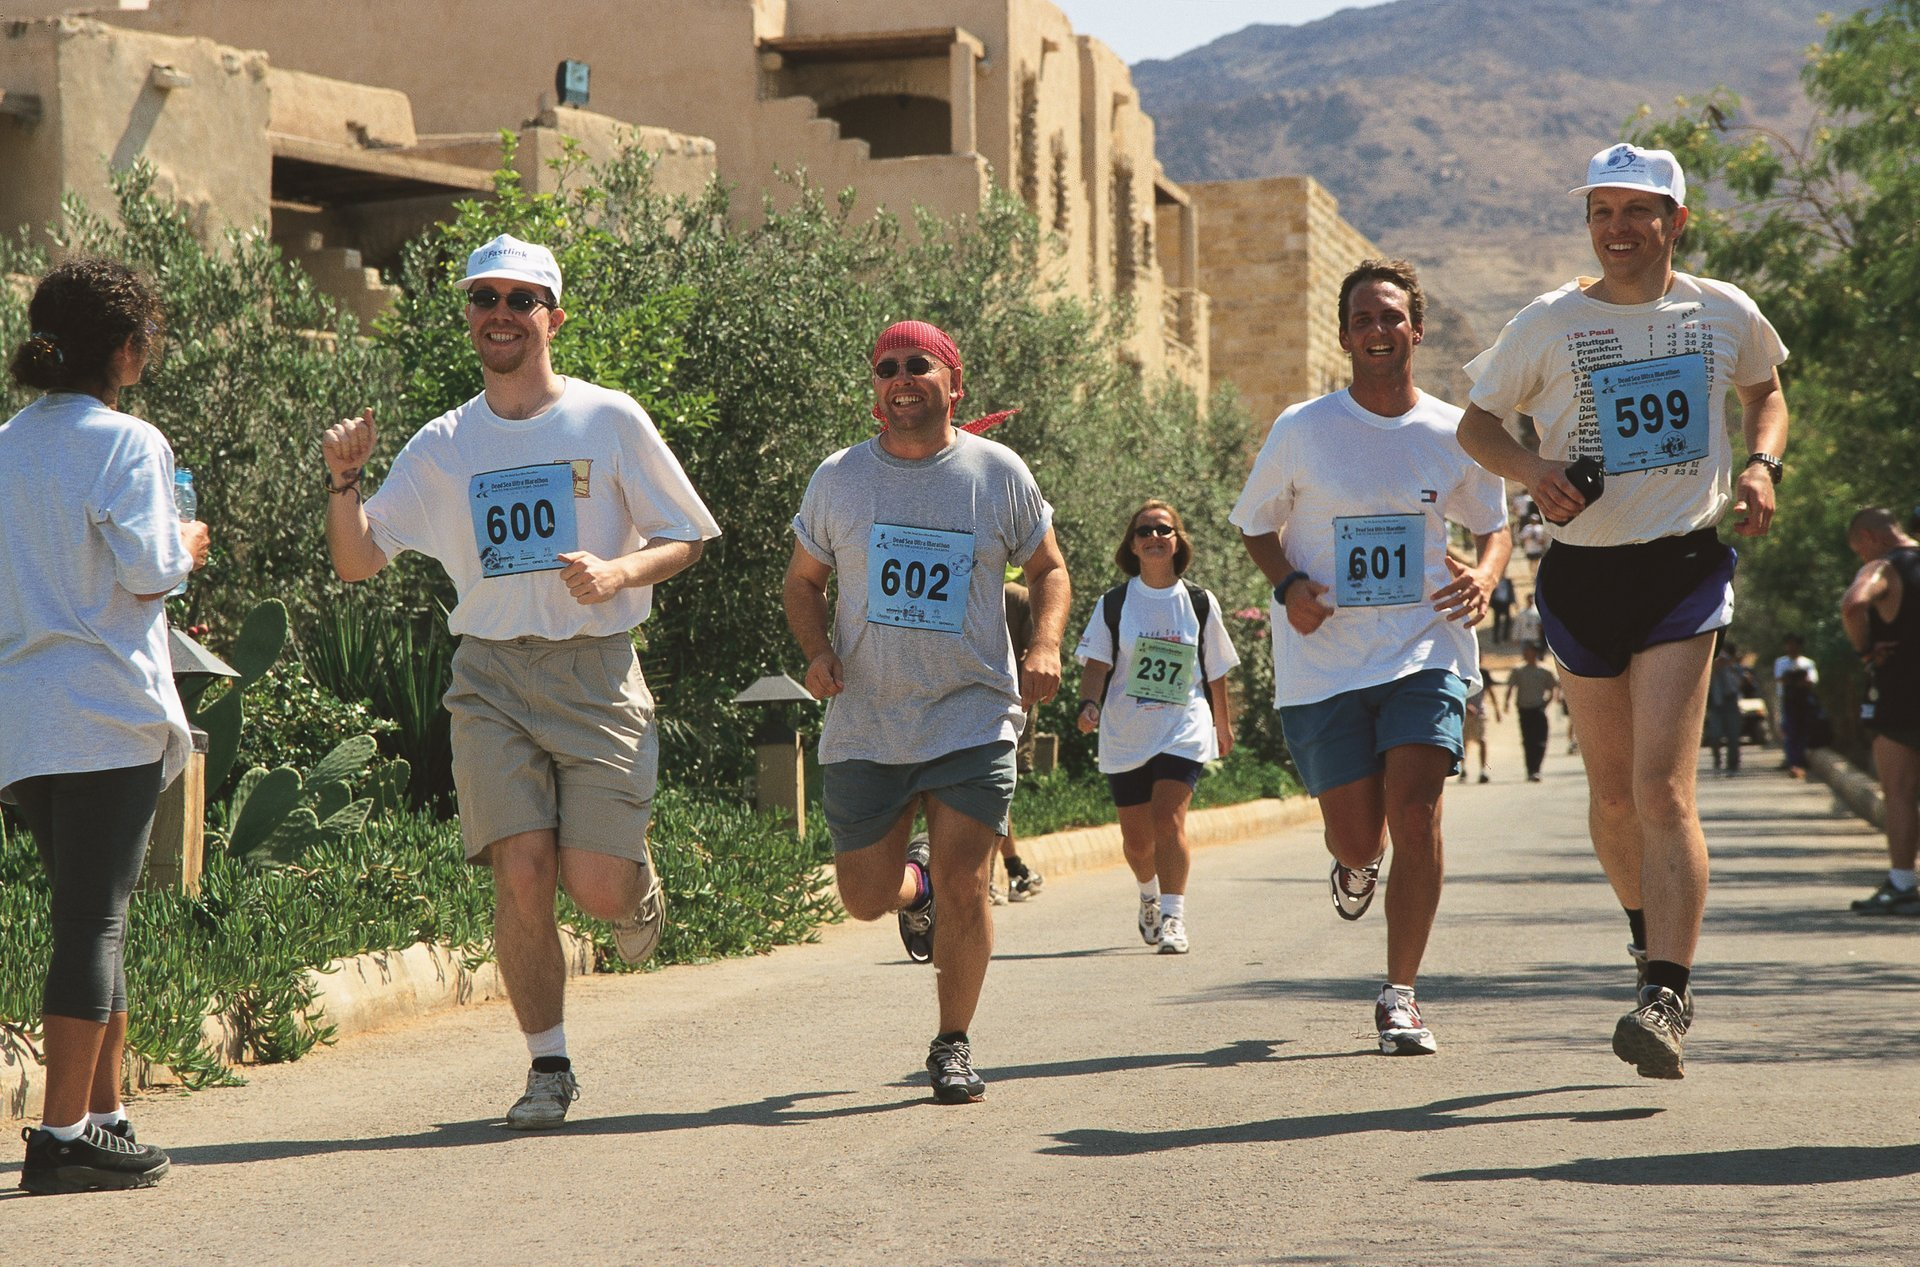 Amman Marathon in Jordan - Best Season 2020